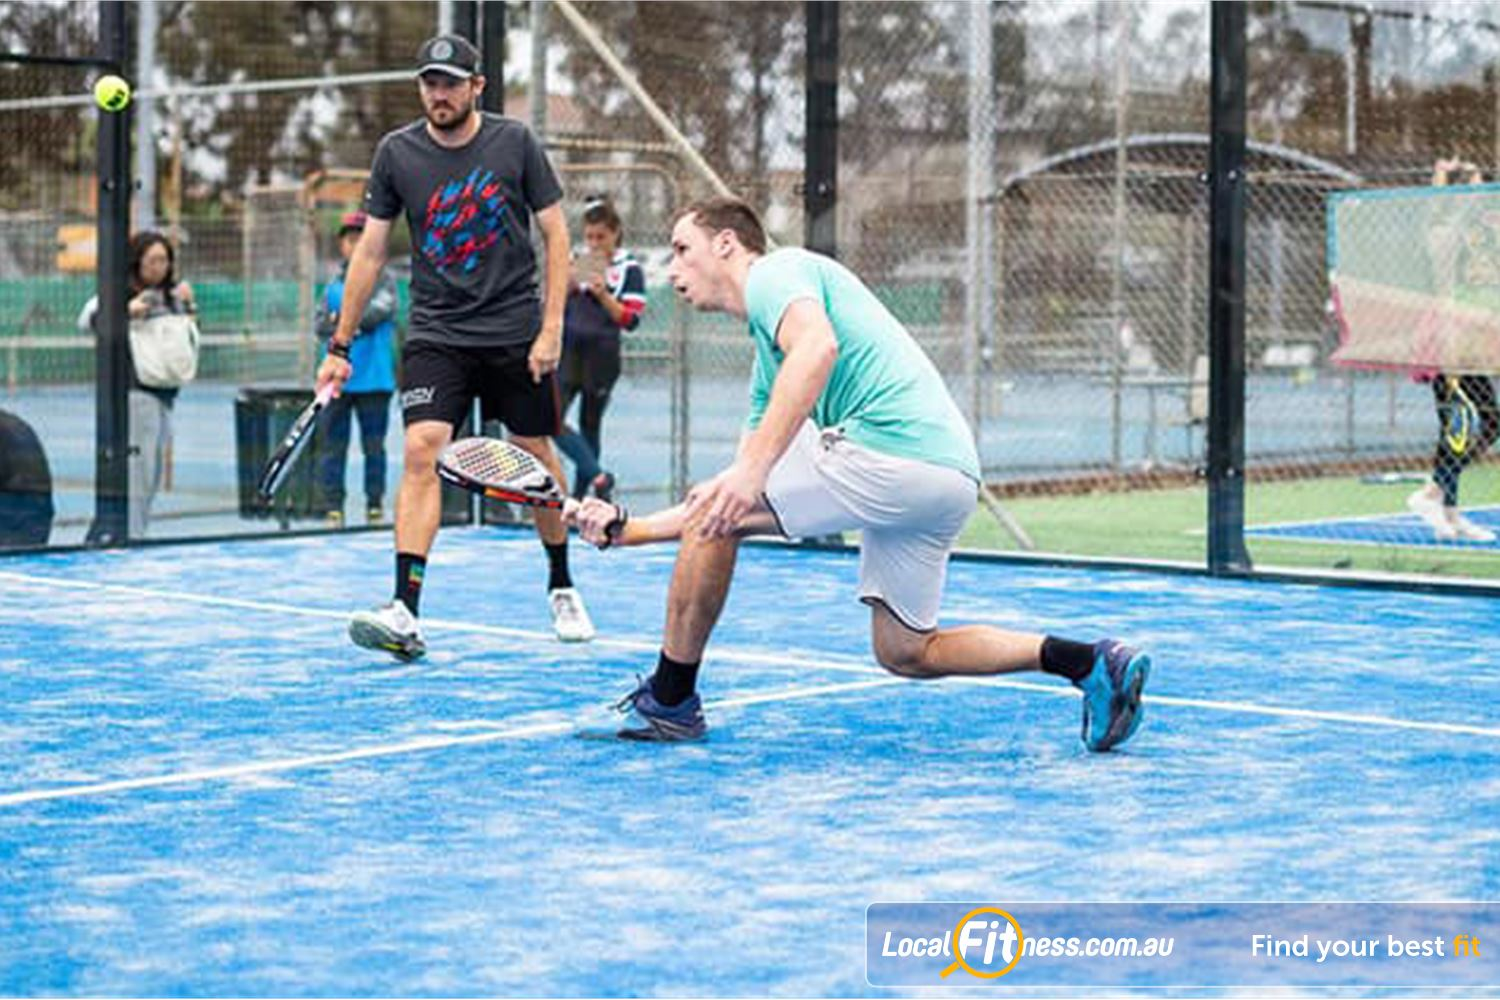 North Ryde Fitness & Aquatic Near Marsfield Experience a new sport, Padal described as 'tennis with walls' and 'squash in the sun'.